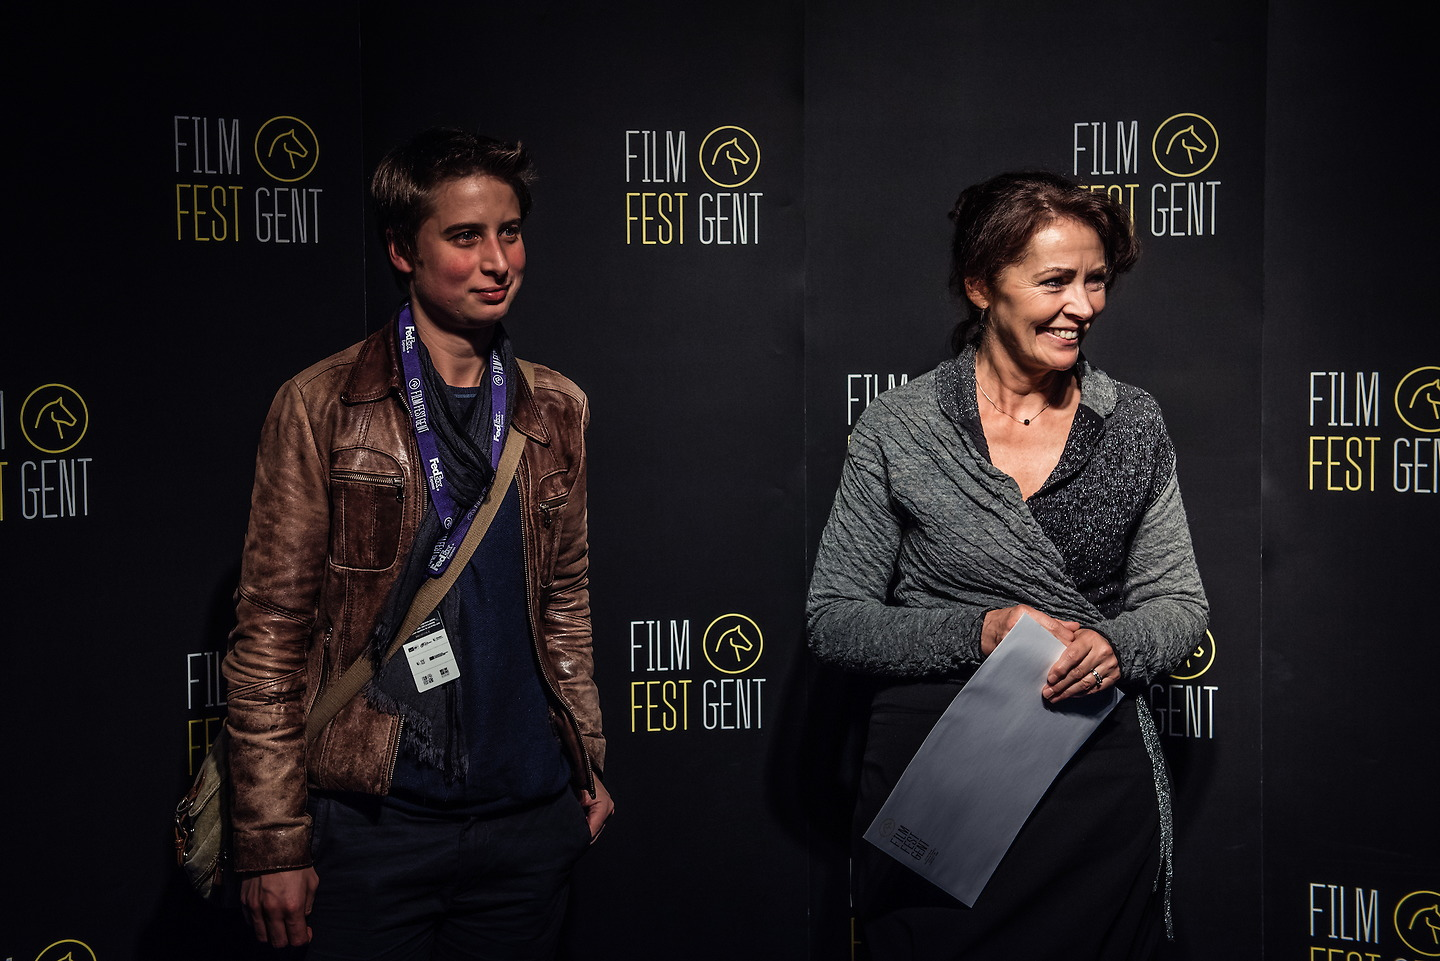 Film Fest Gent - Ace Image Factory Award